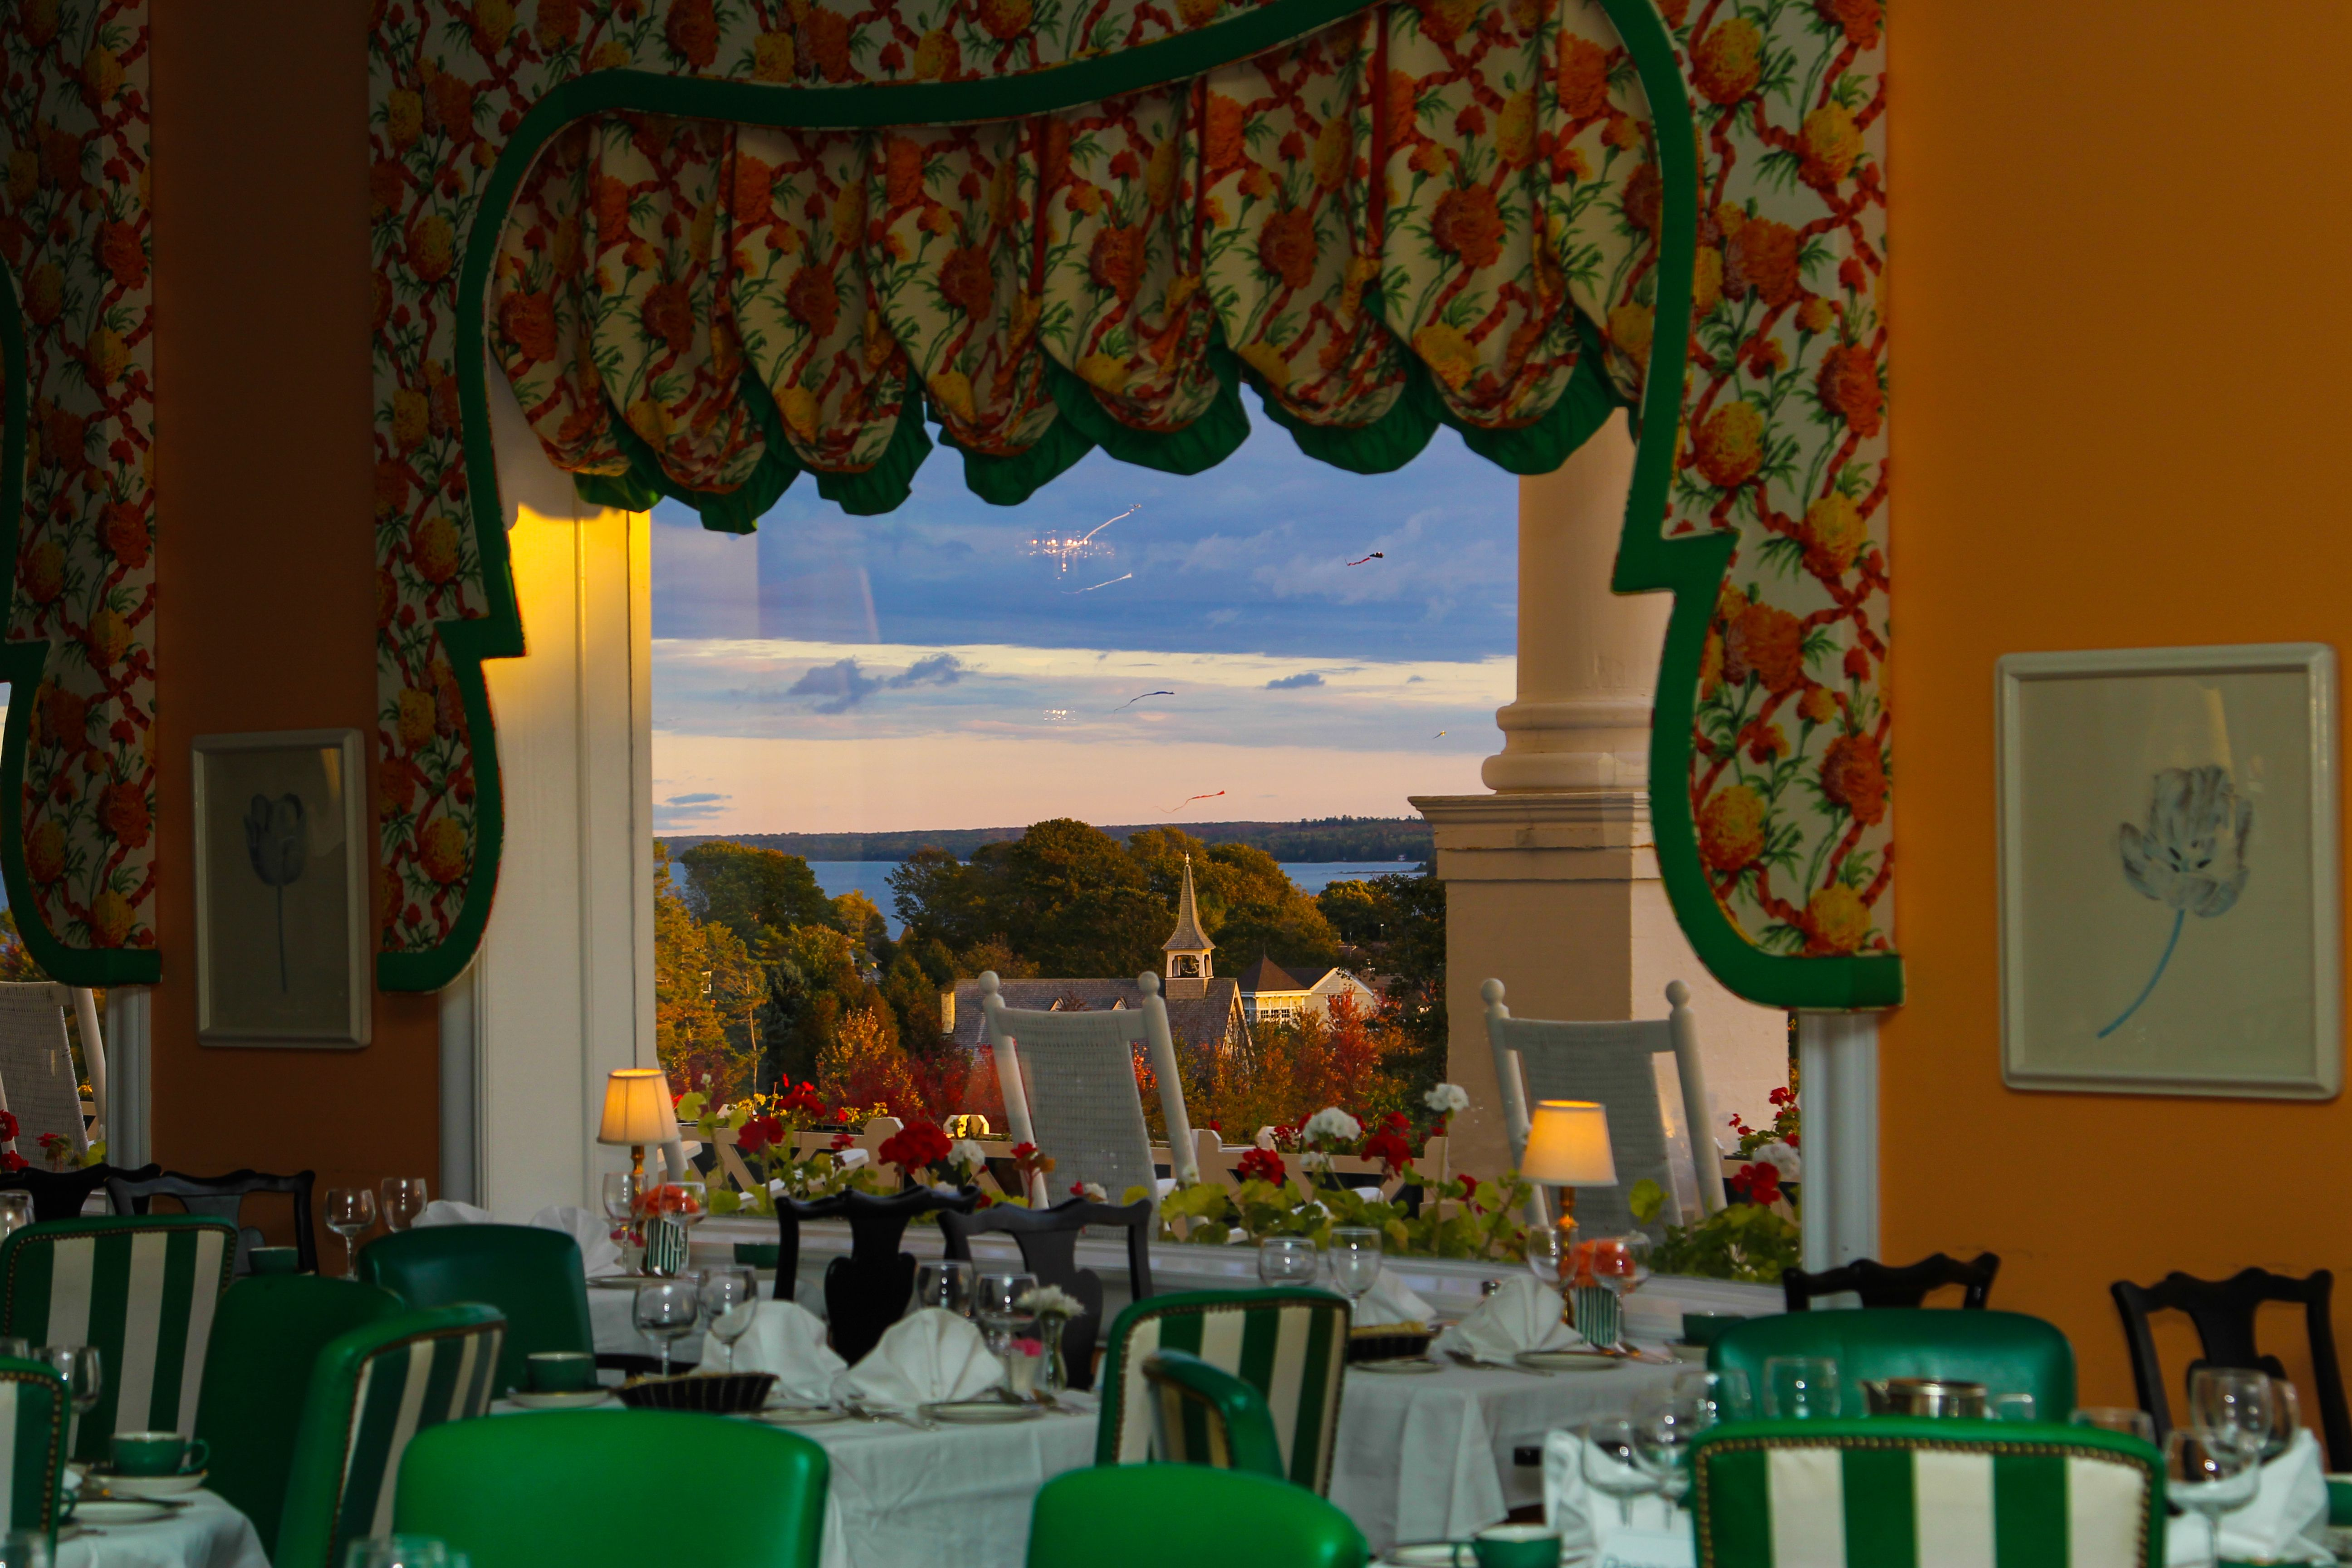 View Out The Window In Fall From The Main Dining Room At Grand Hotel Dinnerwithaview Mackinacisland Grandhotelm Mackinac Island Grand Hotel Mackinaw City